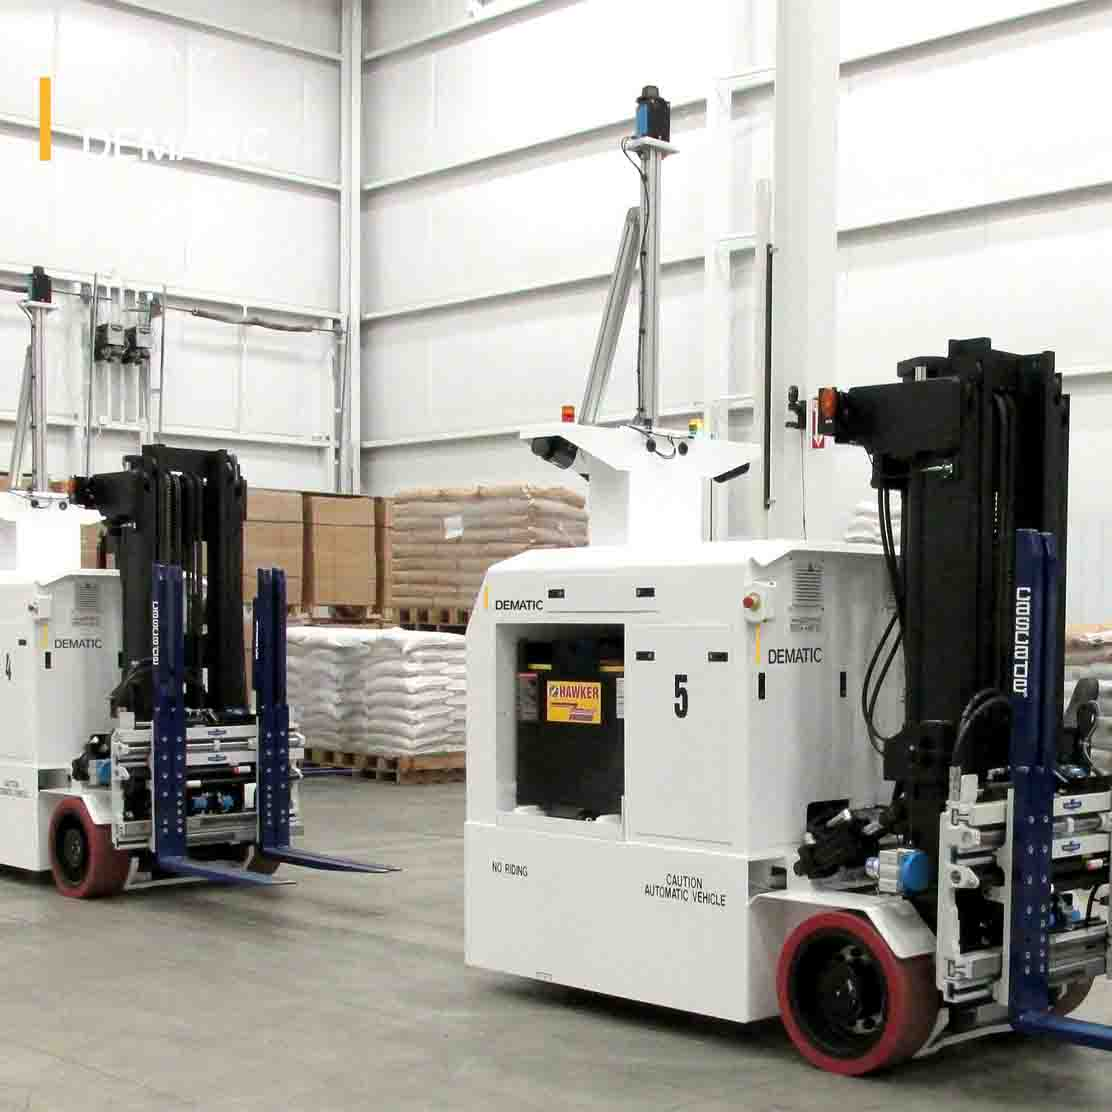 6 1 Cb 2500 Atl 2 2 Agv Systems - About Dematic - Shoppa's Material Handling